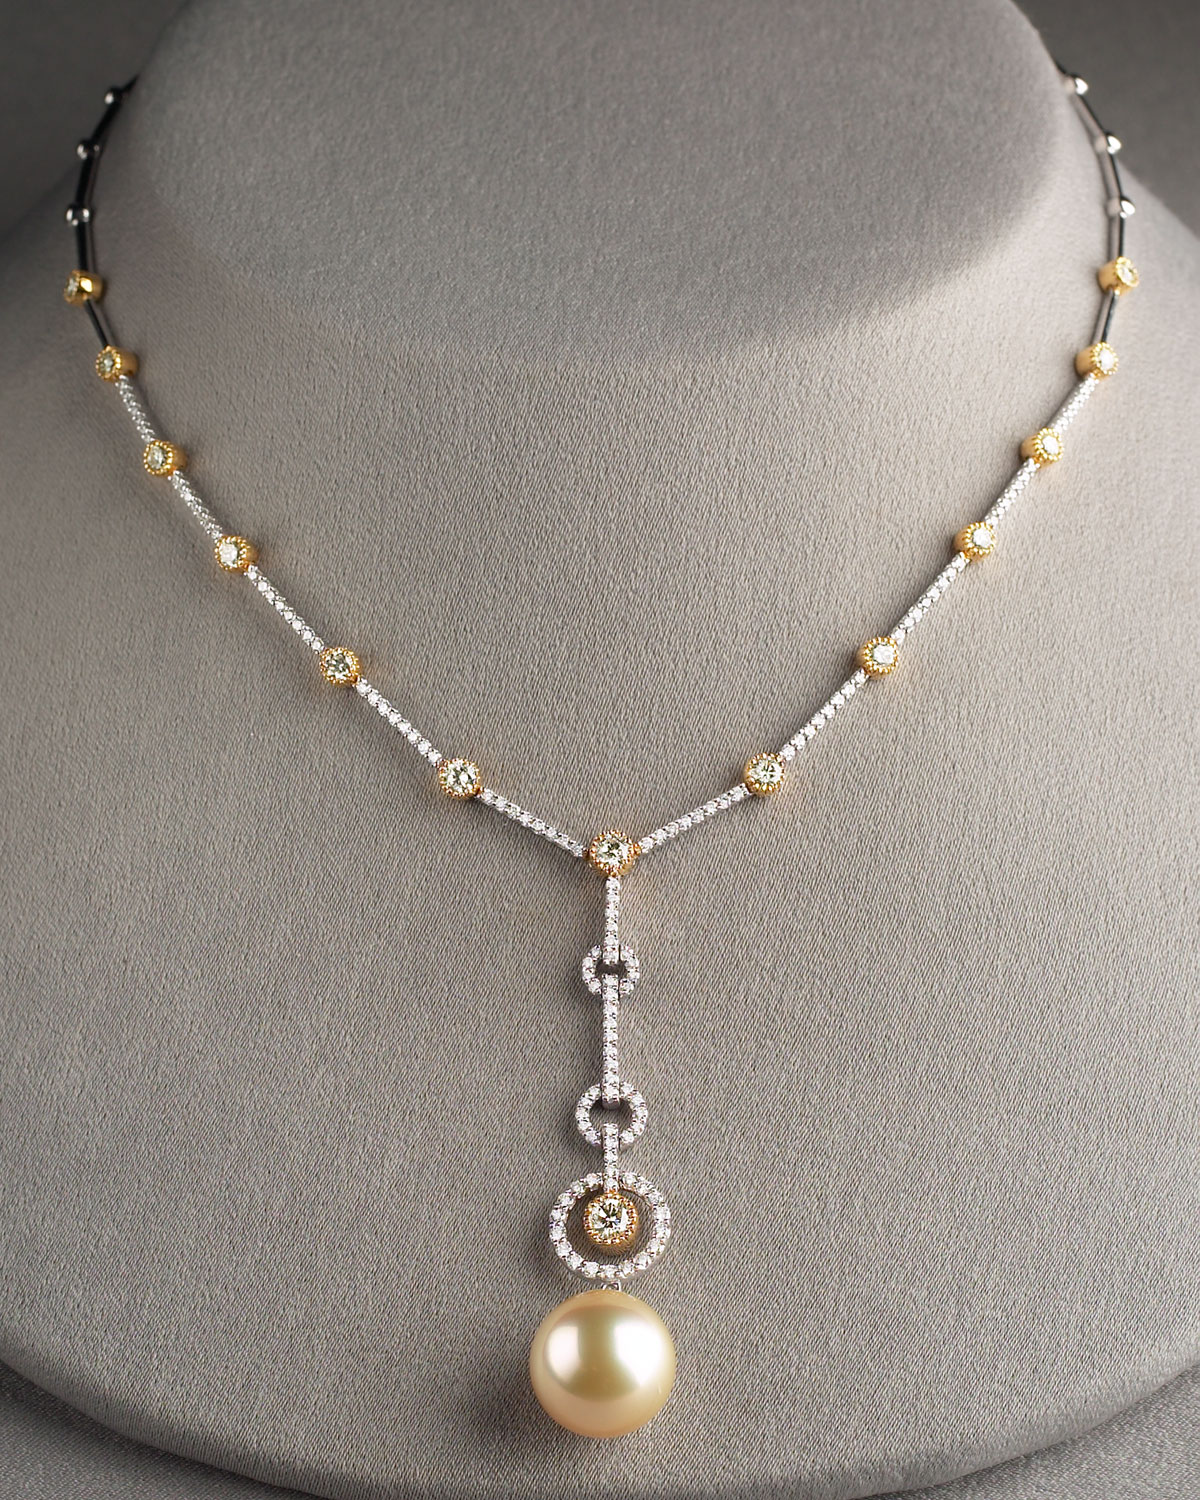 gold diamond jewelers quartz pearl cartier necklace rose opulent jewelry